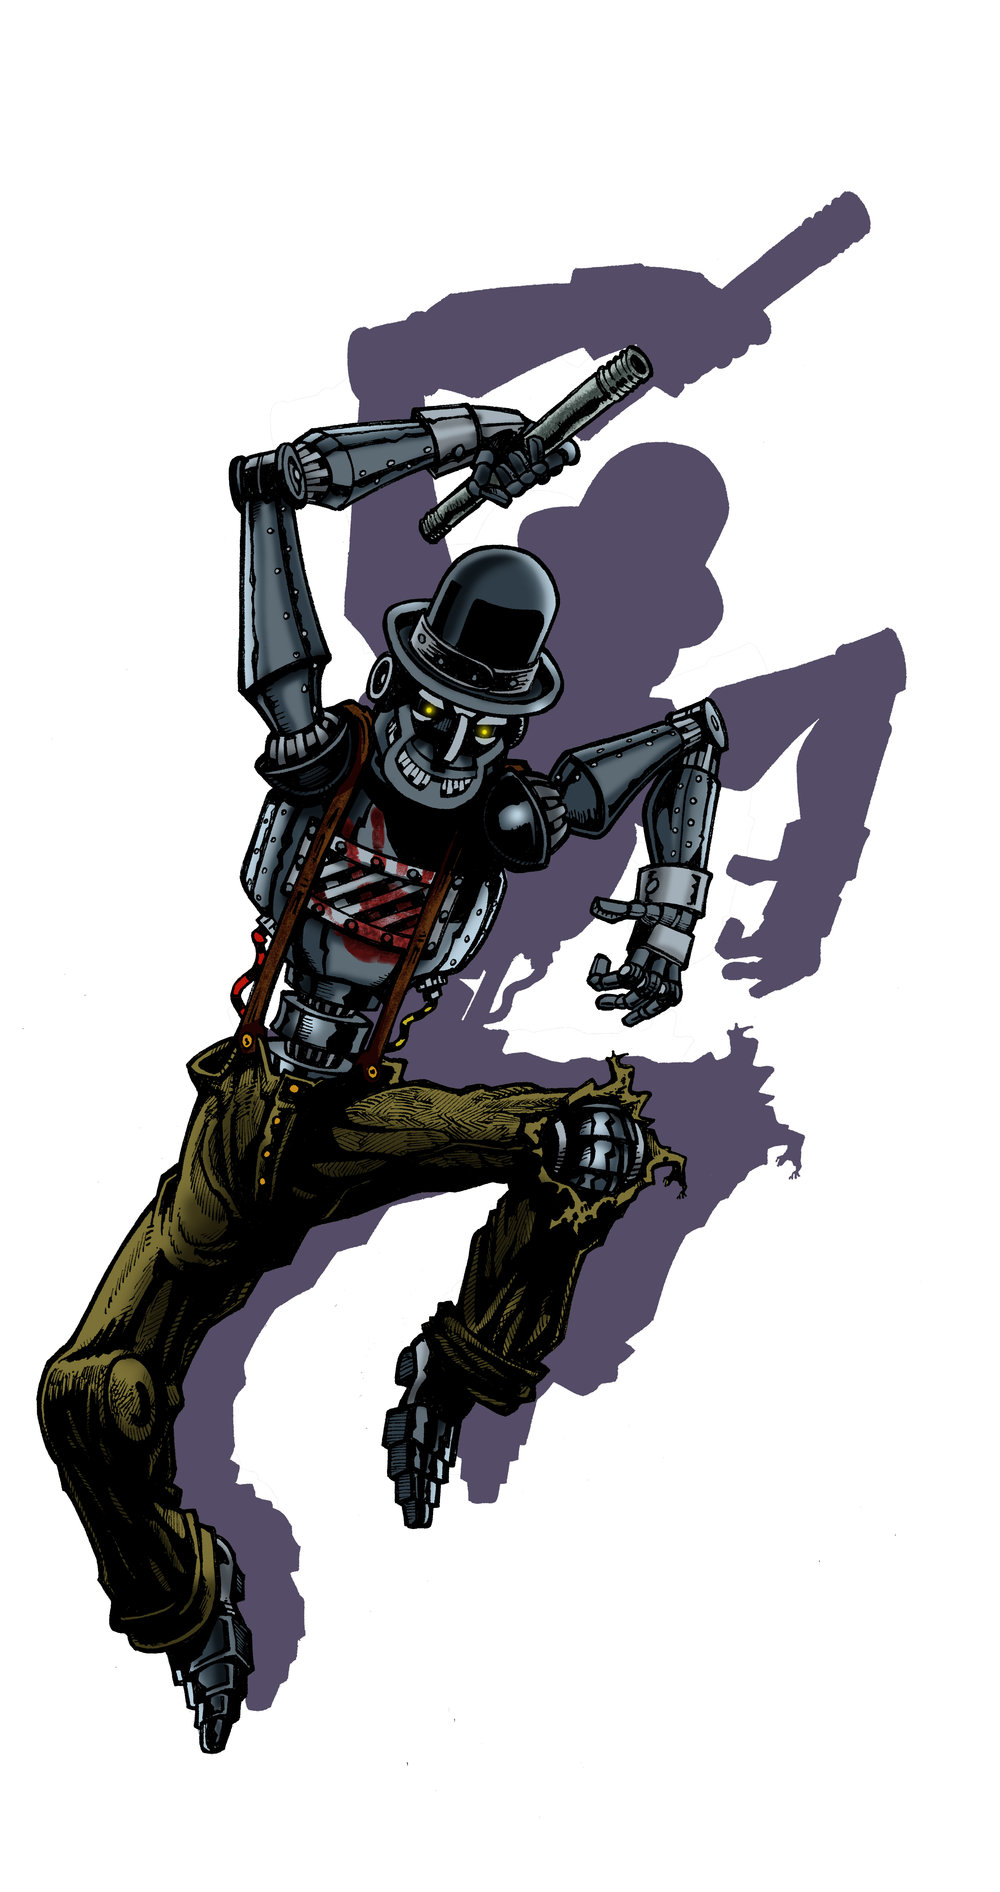 Mr. Tic-Tock. - Originally an automatia for a vaudeville act, when his creator is killed by gangsters, Mr. Tic-Tock soon becomes a machine of vengeance.